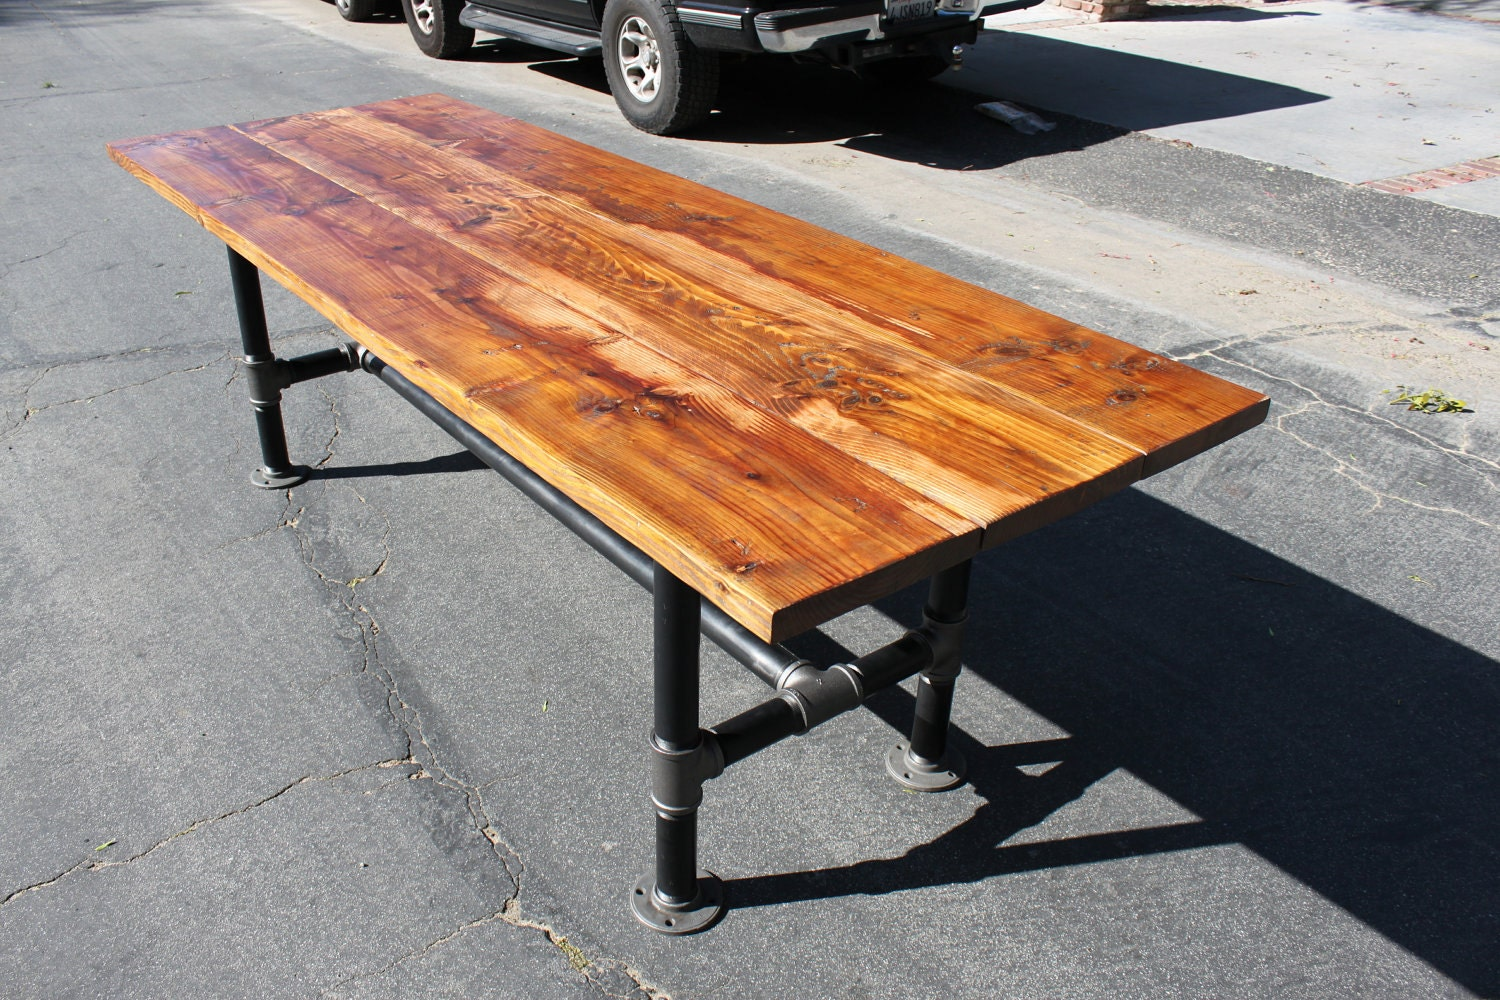 Rustic Reclaimed Wood Table with Industrial by StuartCollective